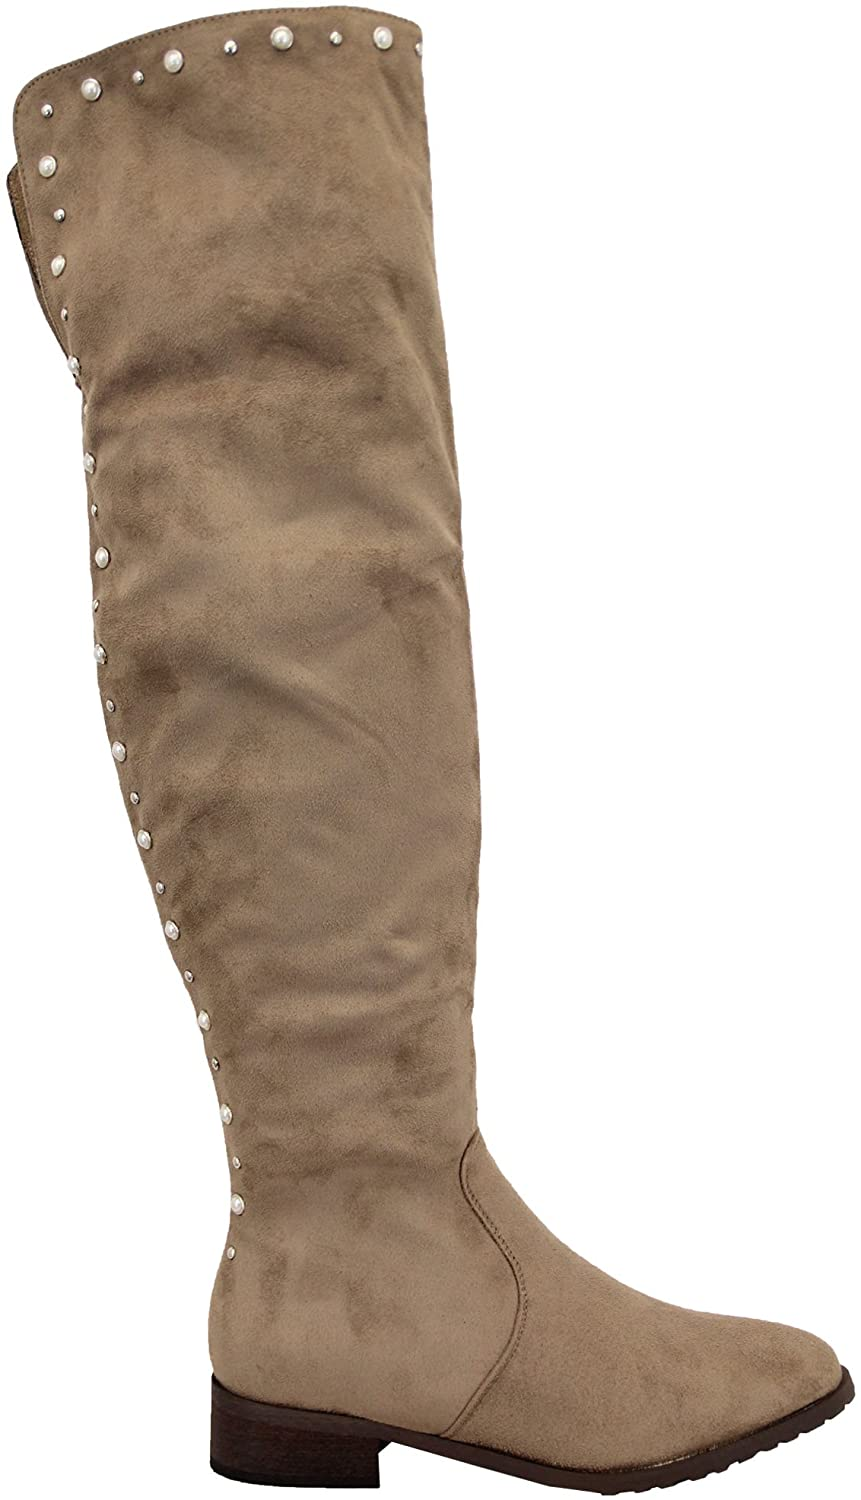 Unbranded Ladies' Stylish Boots